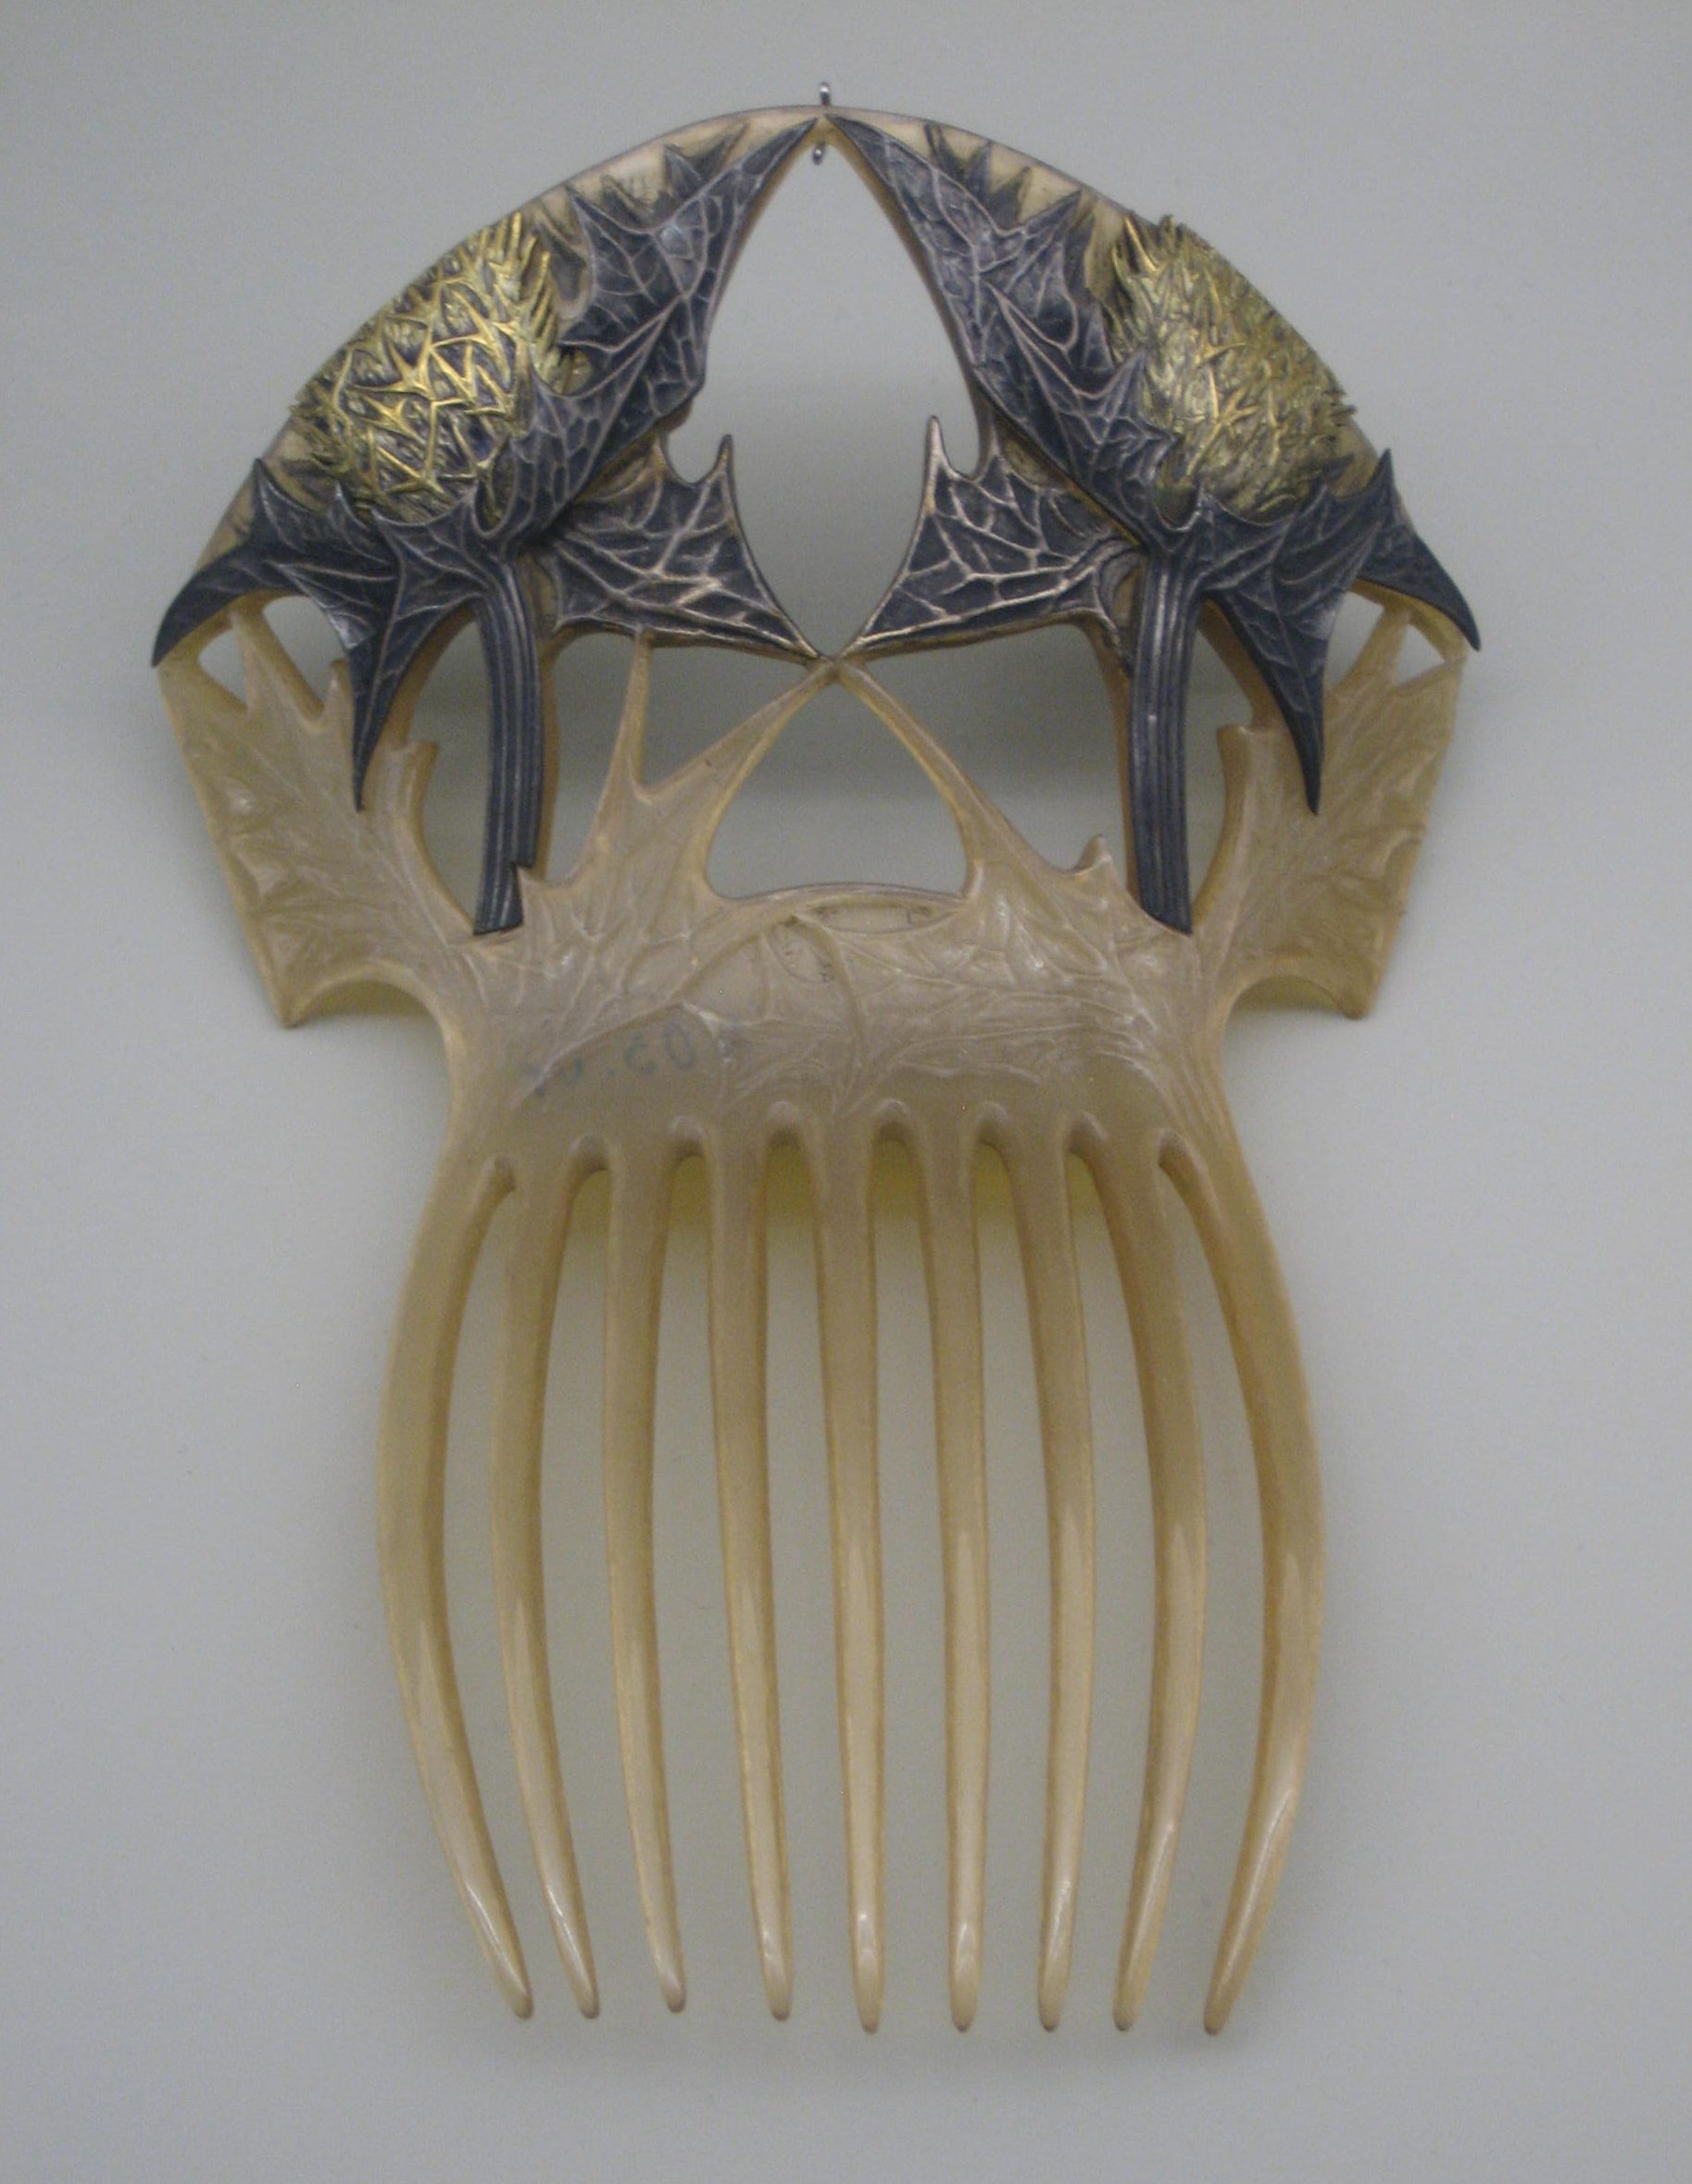 René Lalique, kam, 1900. Collectie Grassimuseum. Foto Esther Doornbusch, CC BY 4.0